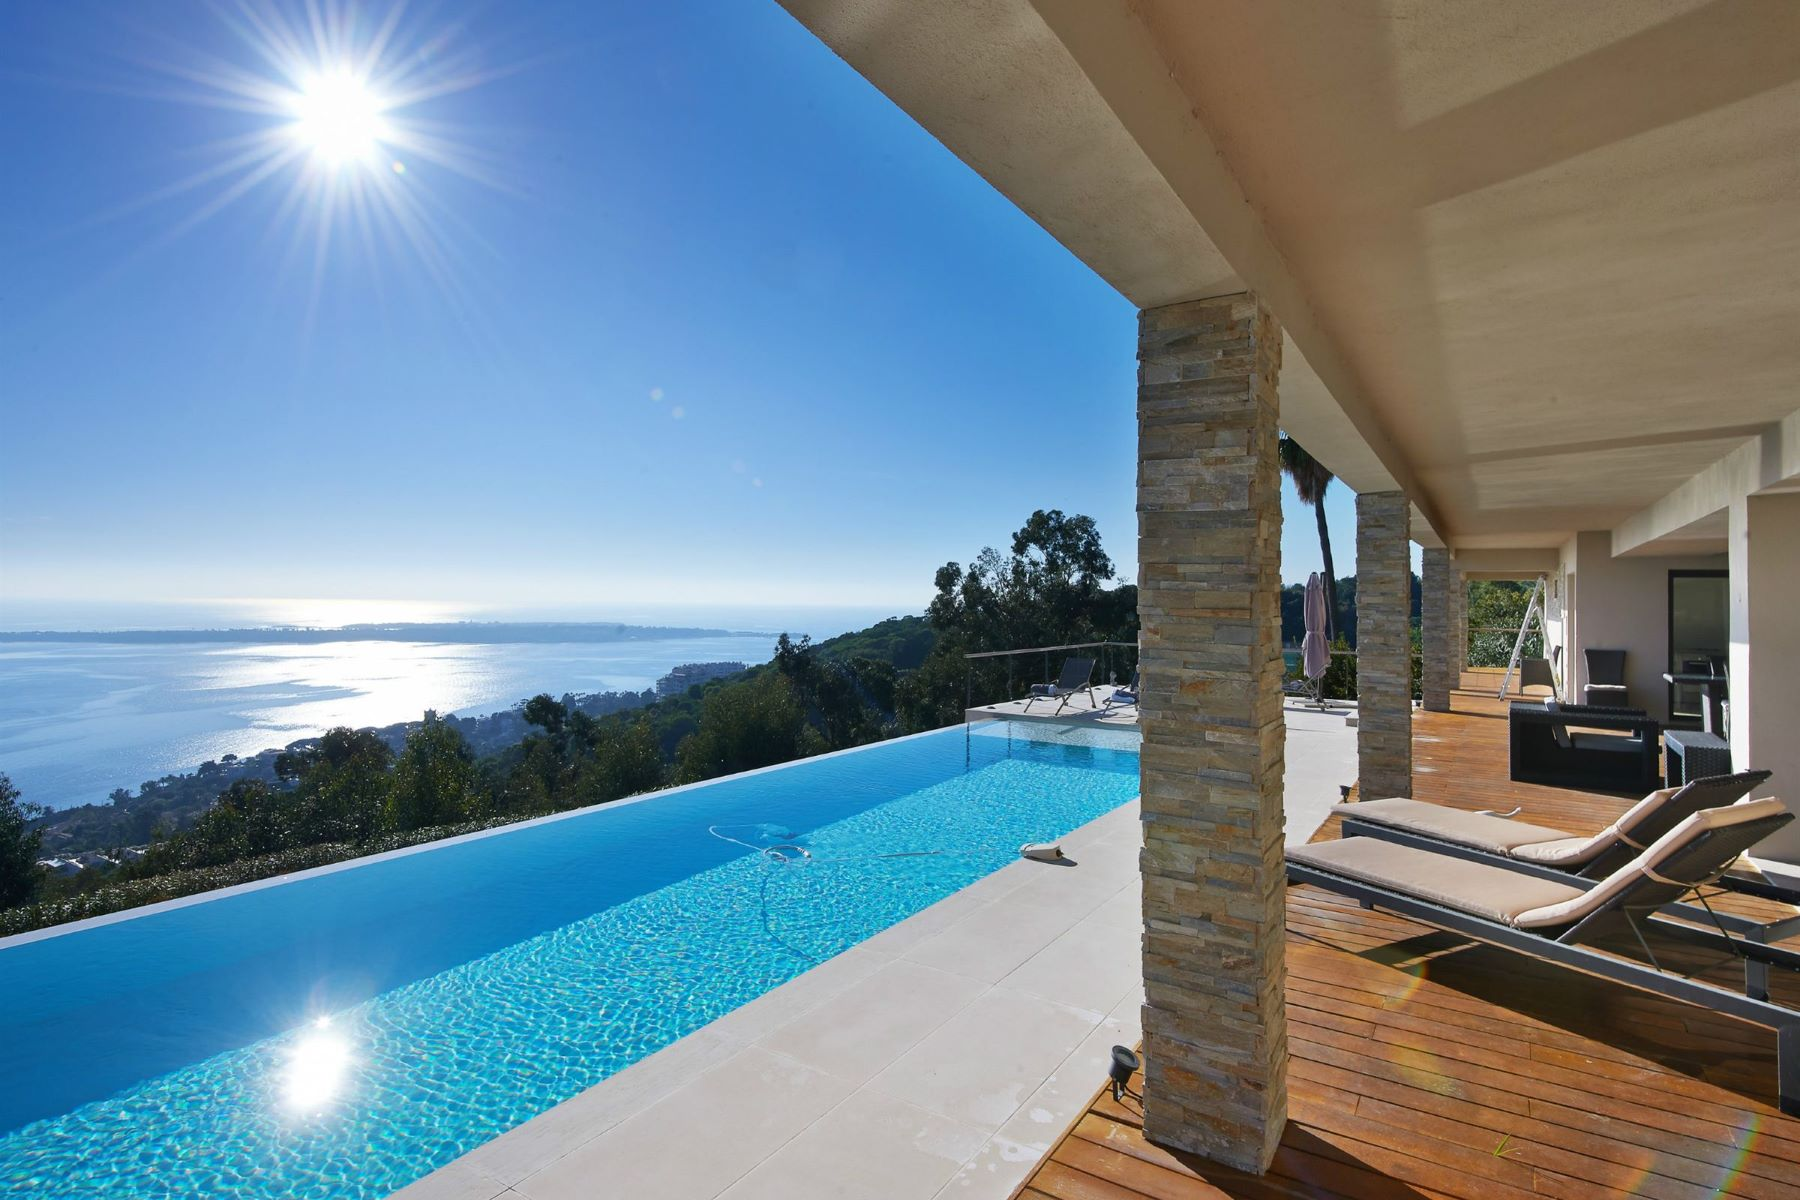 Single Family Home for Sale at Contemporary estate in Super Cannes with panoramic sea views Cannes, Provence-Alpes-Cote D'Azur, 06400 France